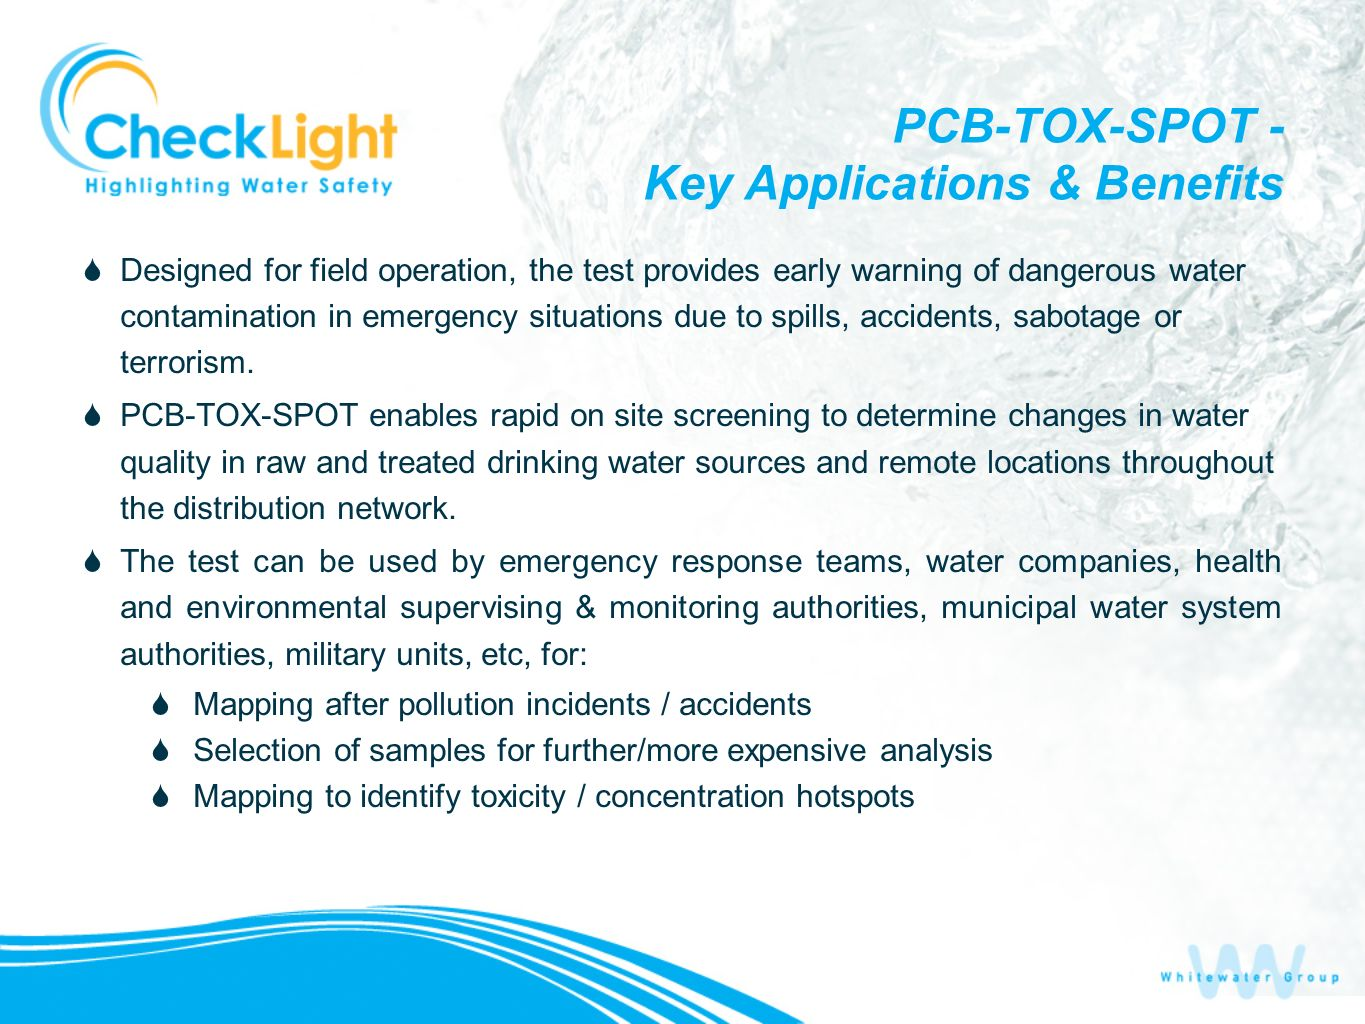 PCB-TOX-SPOT - Key Applications & Benefits